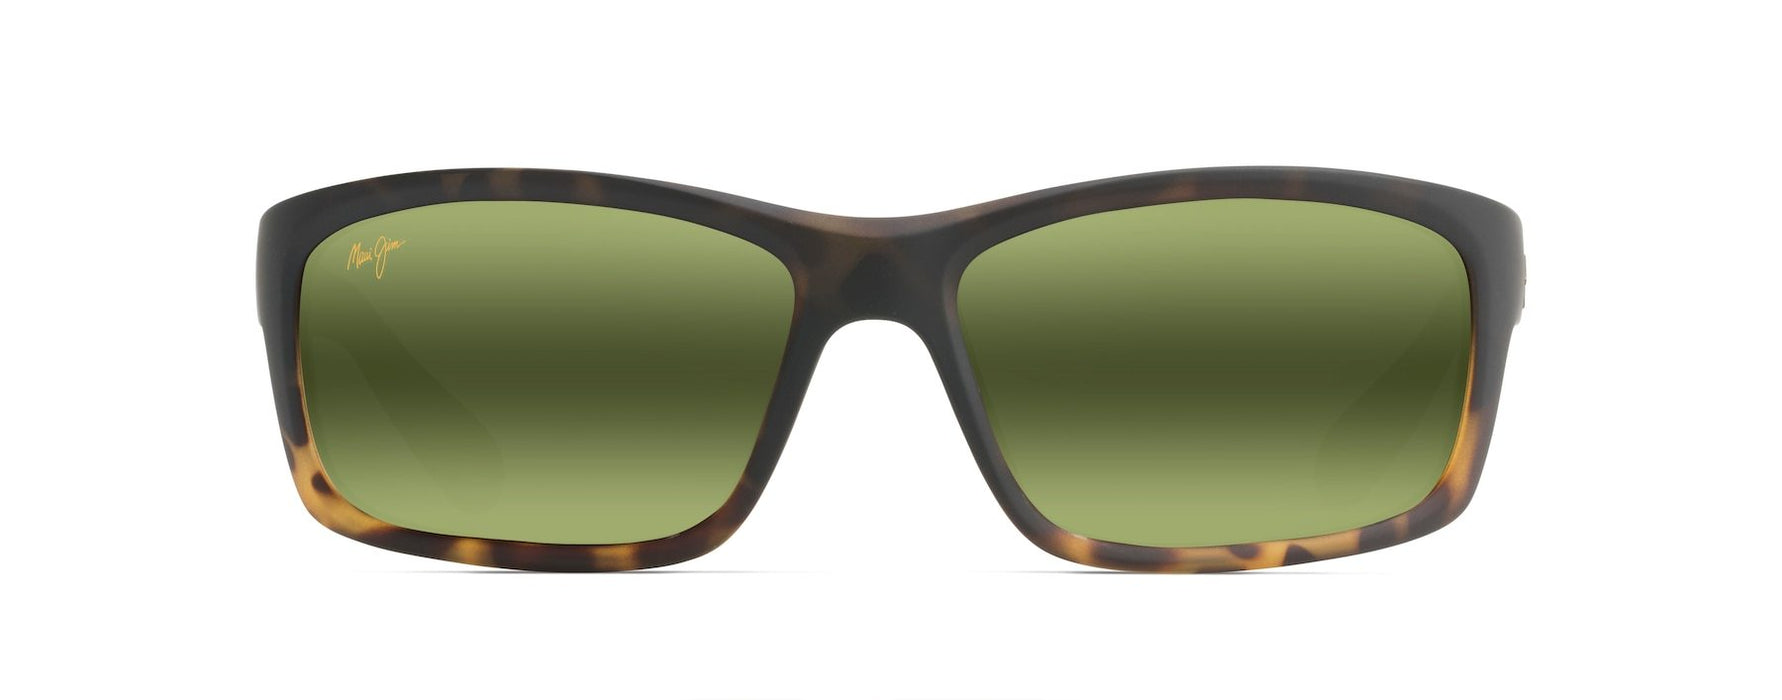 MyMaui Kanaio Coast MM766-009 Sunglasses